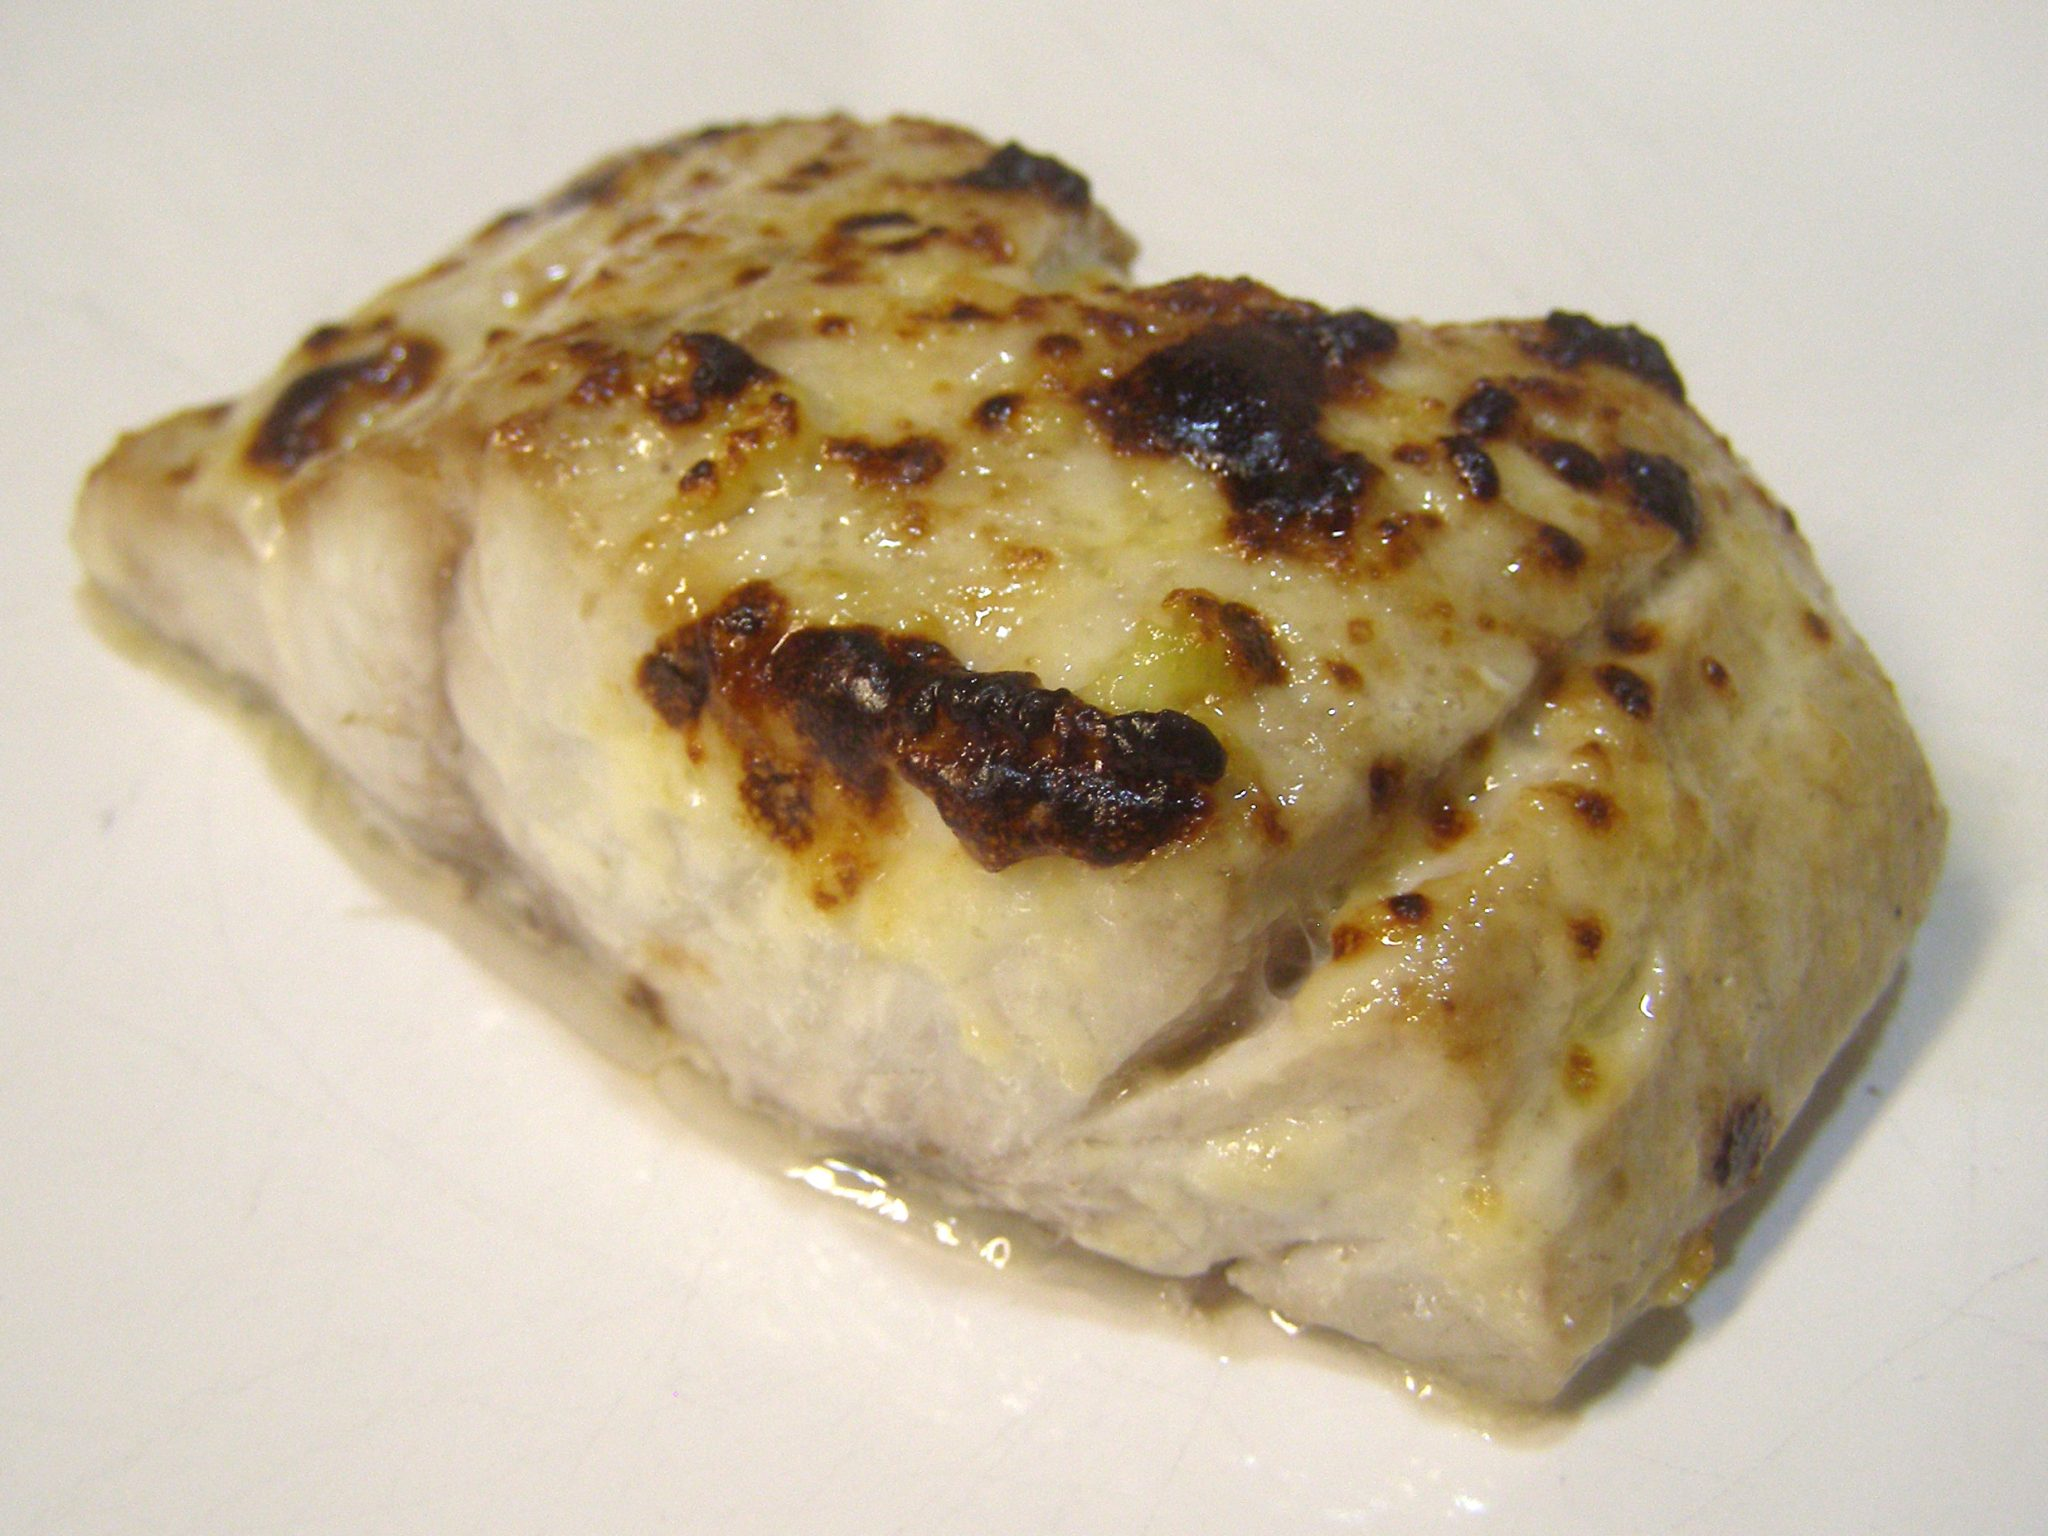 Broiled Bluefish Fillet with Lemon-Garlic Mayonnaise